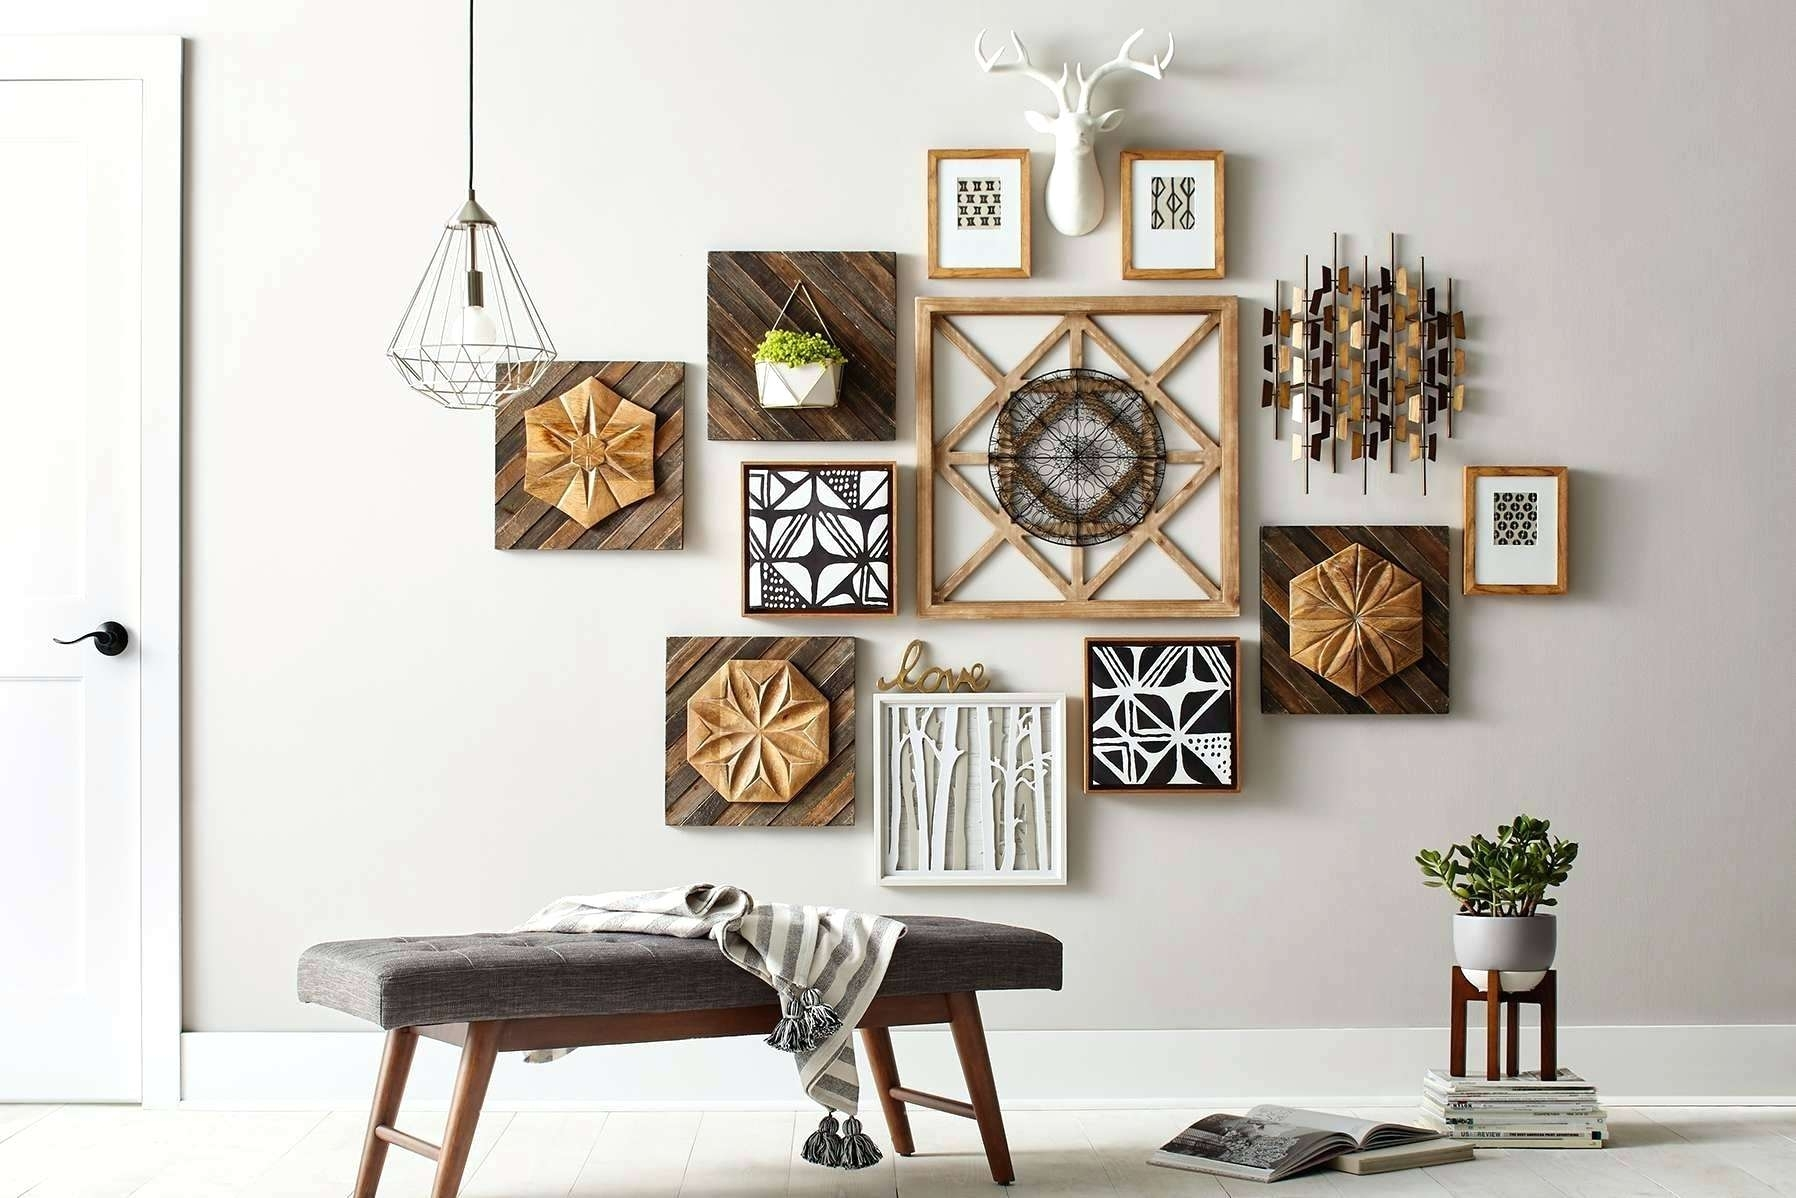 Wall Tapestrie Nice Wall Art Target – Wall Decoration And Wall Art Ideas In 2018 Target Wall Art (View 2 of 15)